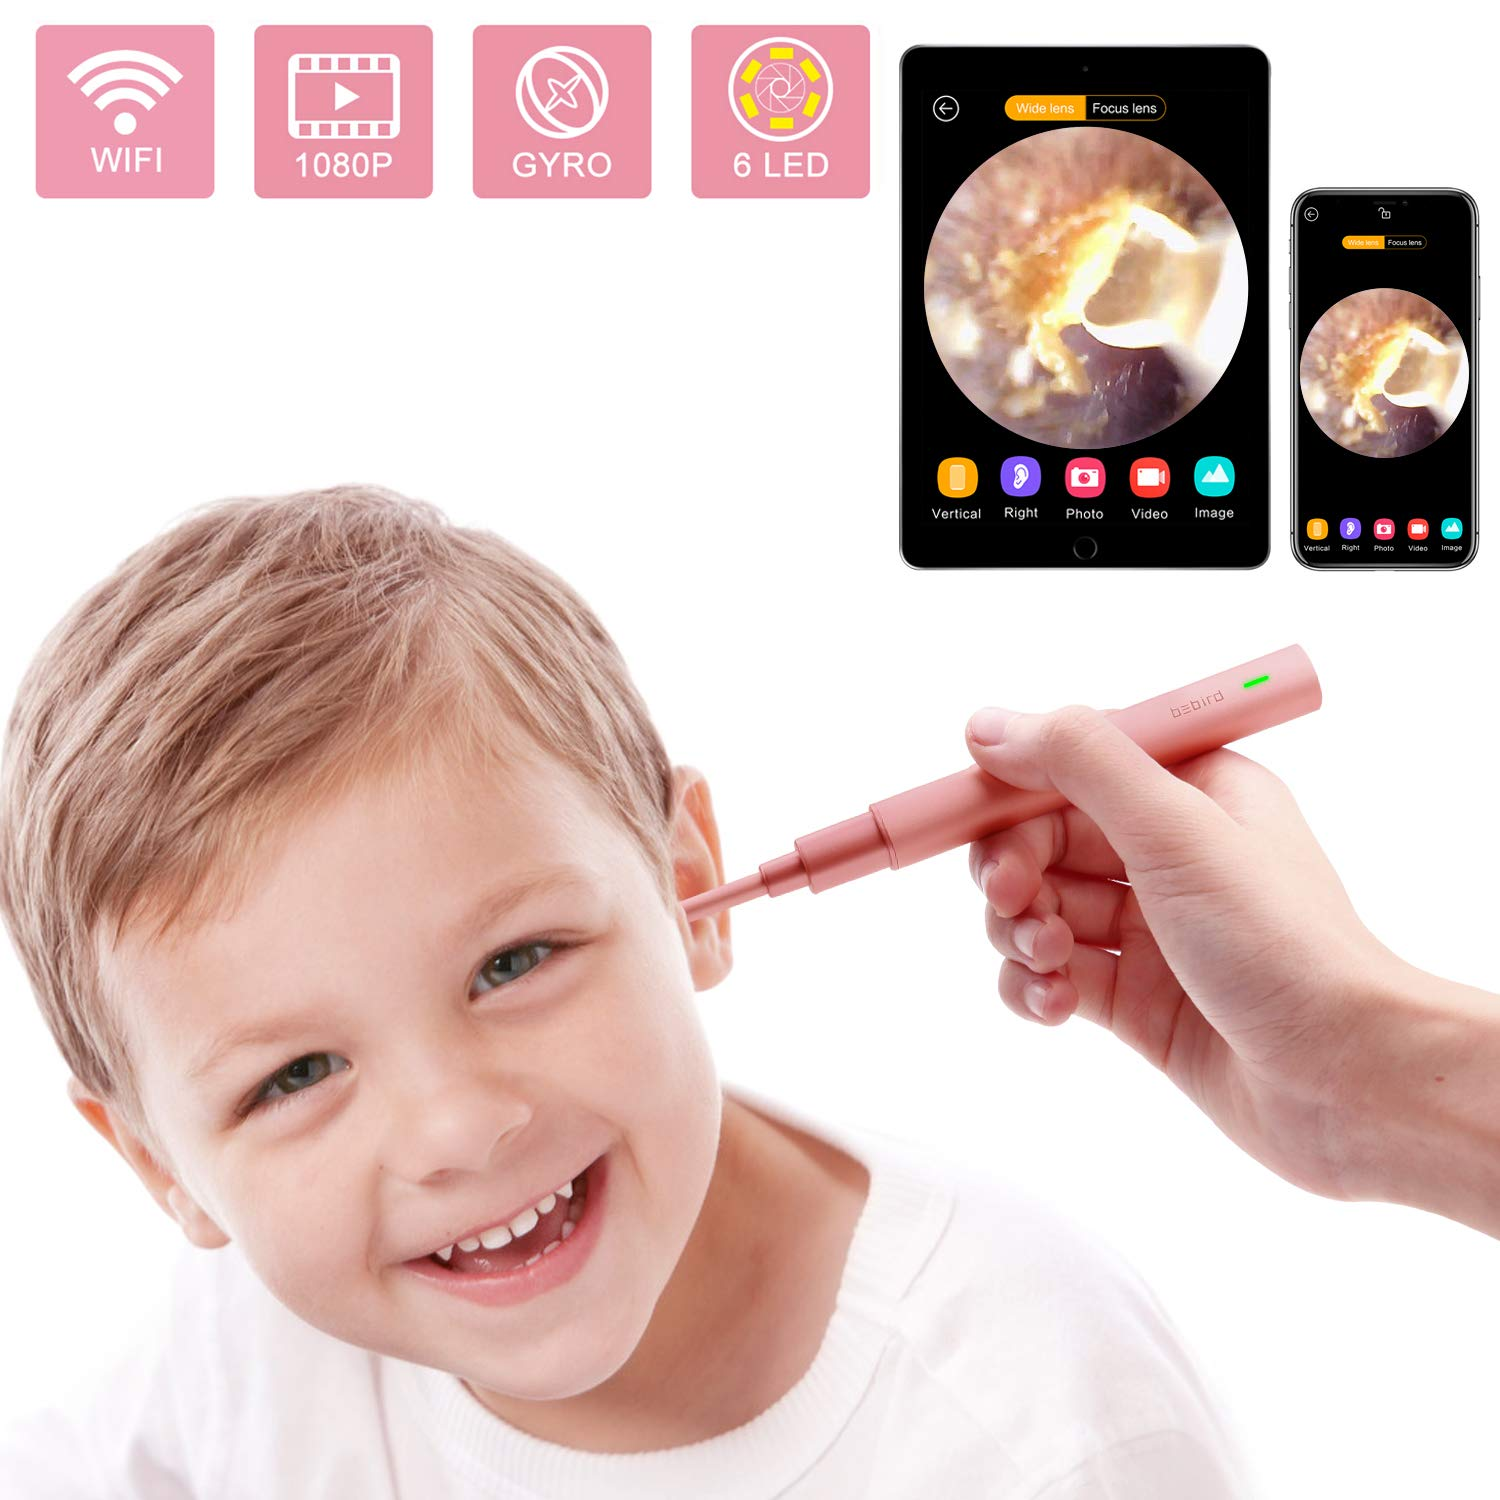 Ear Camera, 1080P FHD Wireless Ear Wax Removal Endoscope, Super Light Lens WiFi Ear Endoscope with 6 LED Lights, Ear Otoscope Camera with 3-Axis Gyroscope, Compatible with Smartphone and Tablet. by Hmount